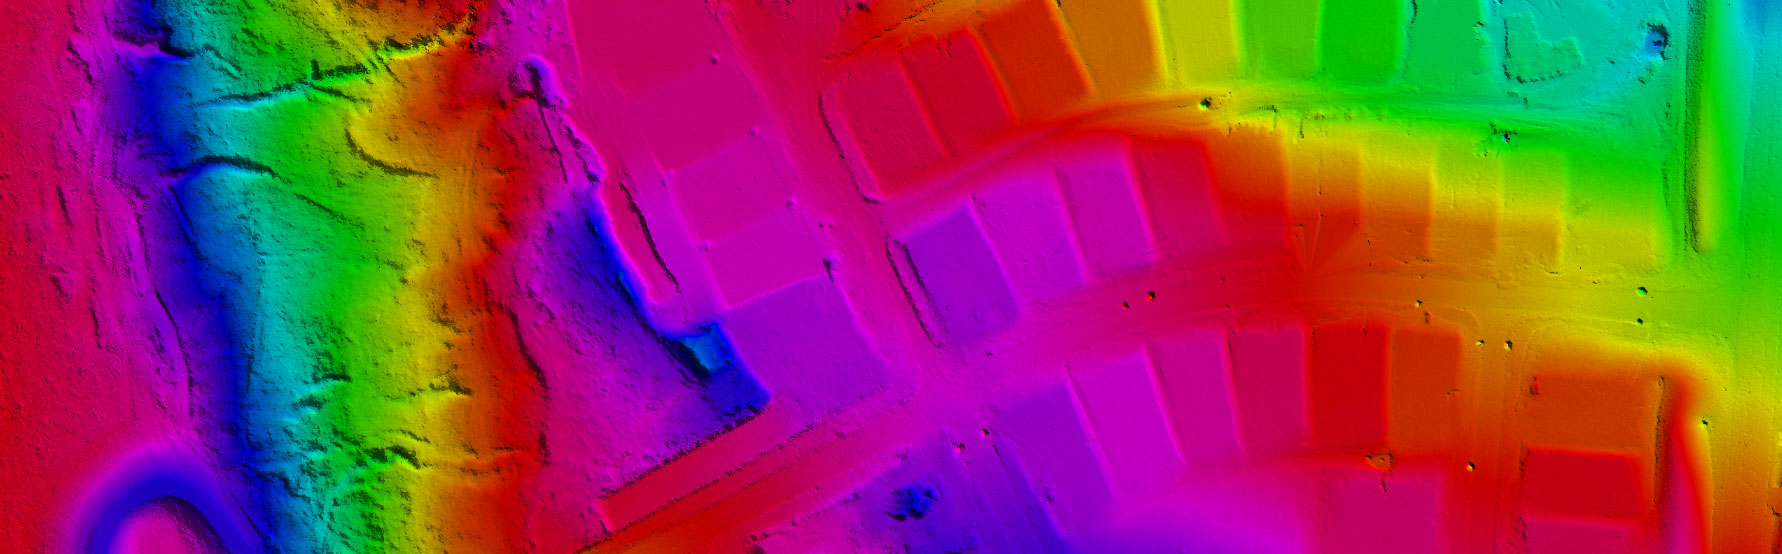 Drone-based LiDAR: what to know